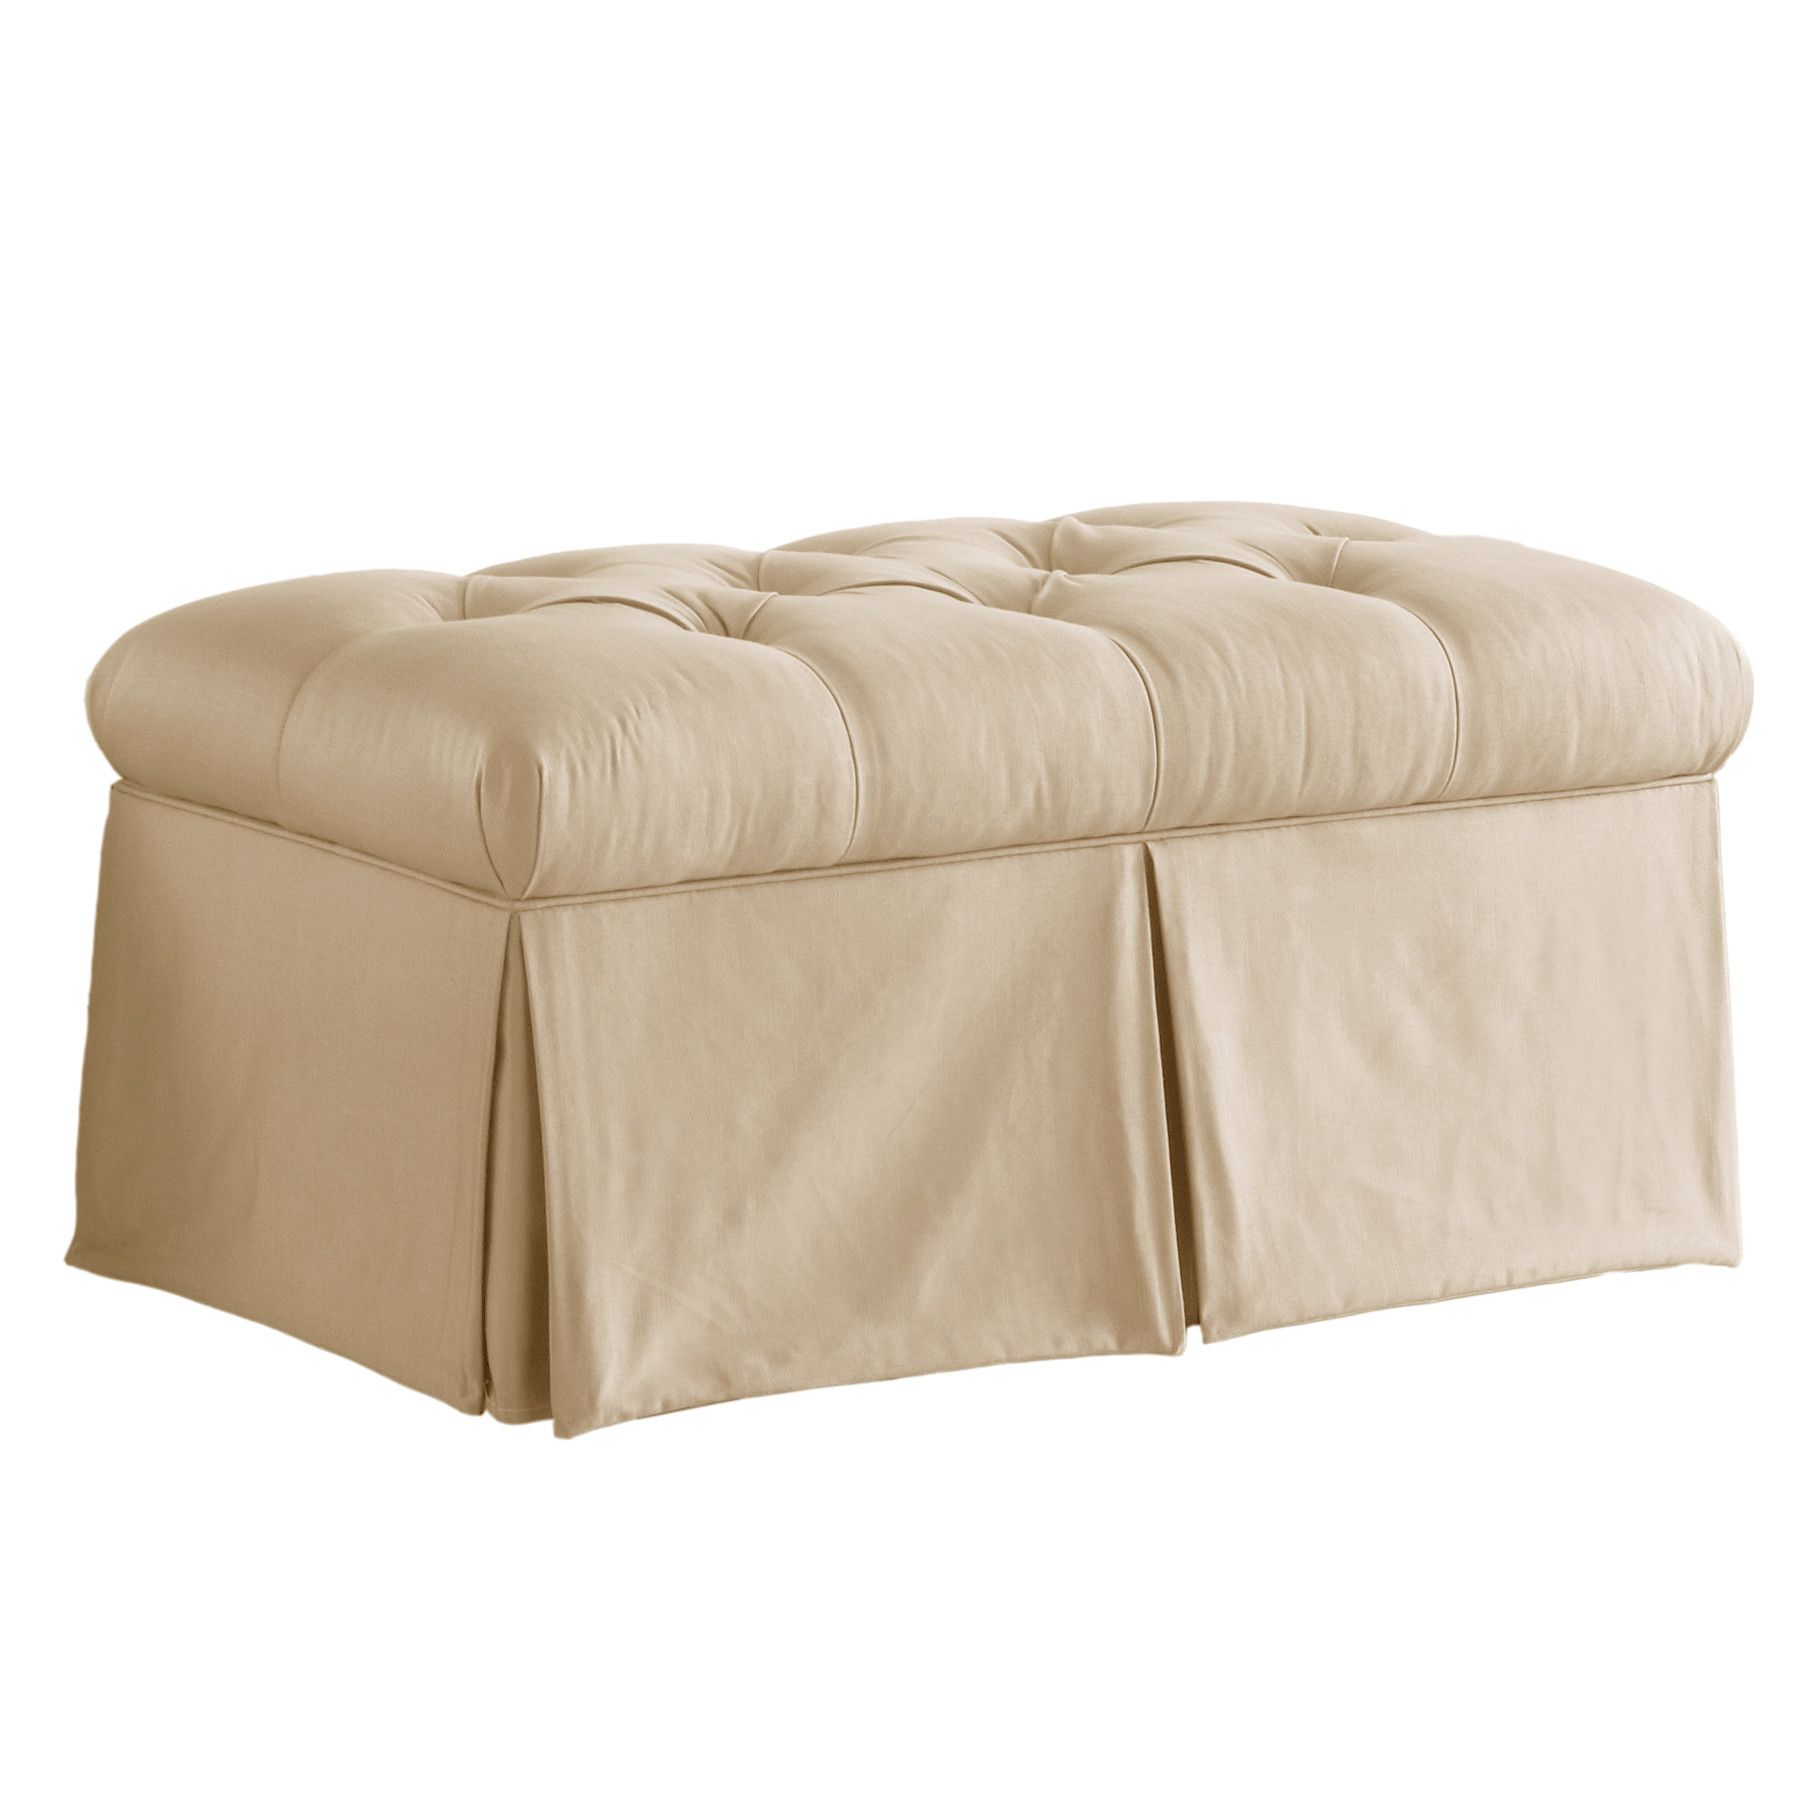 Skyline Furniture Tufted Skirted Bedroom Storage Ottoman Wayfair Dont Really Like The Design Much But A Storage Bench Tufted Storage Bench Bedroom Storage